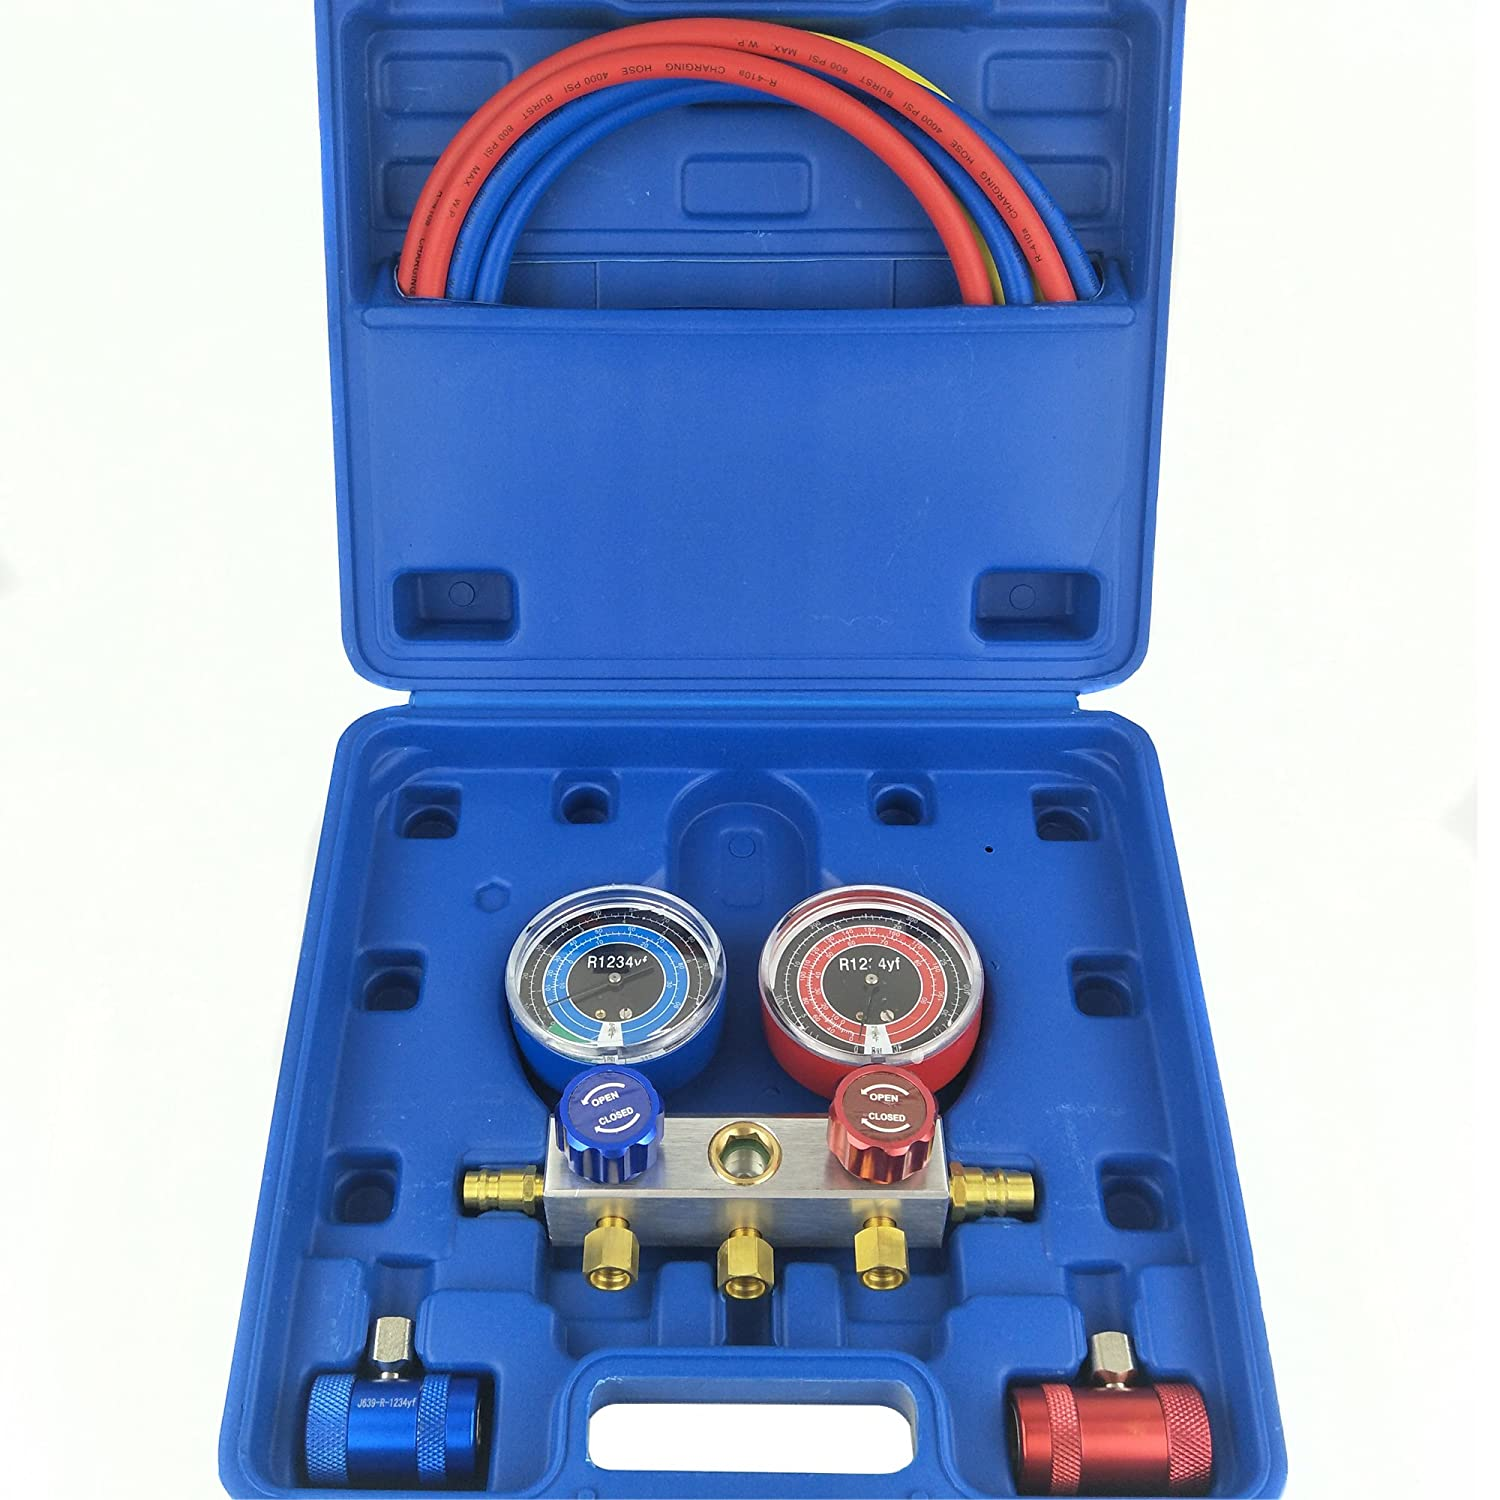 Wisepick AC Manifold Gauge Set R1234YF 3 Way HVAC Air Conditioning Refrigerant Diagnostic Tool Kit